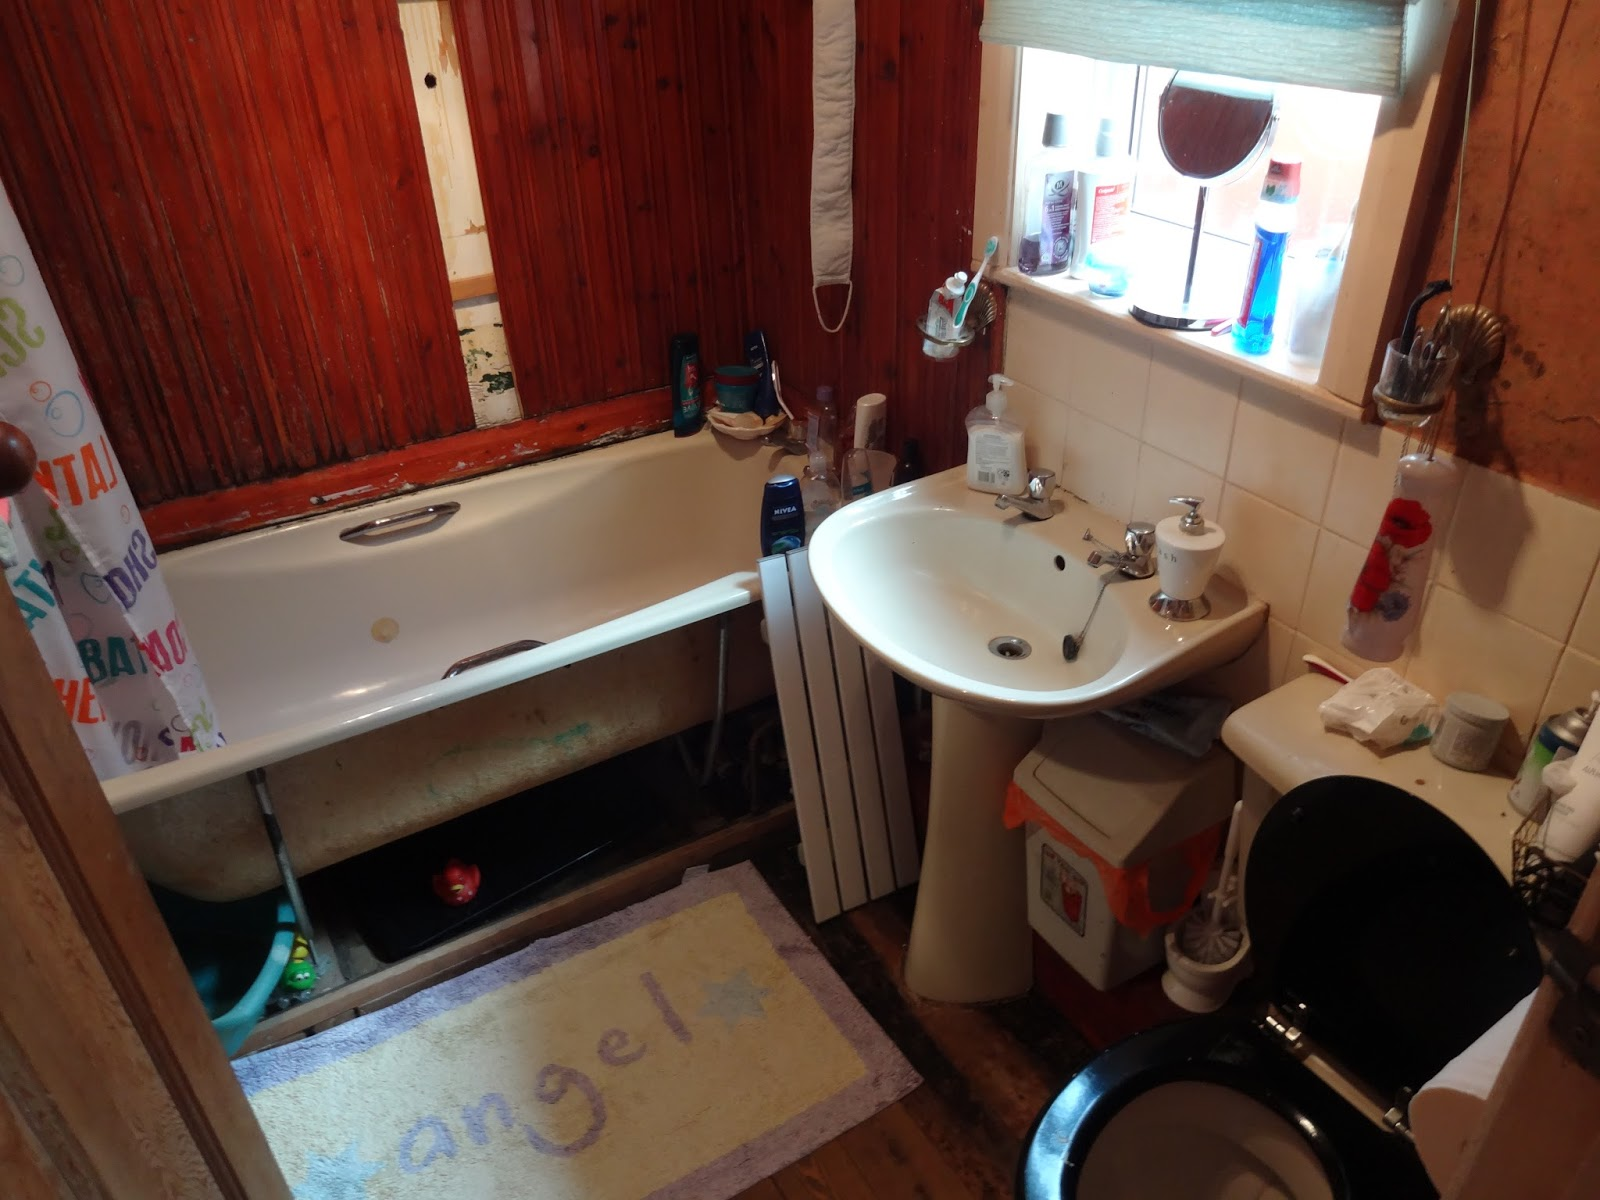 How To Stop Kitchen Sink From Over Flowing